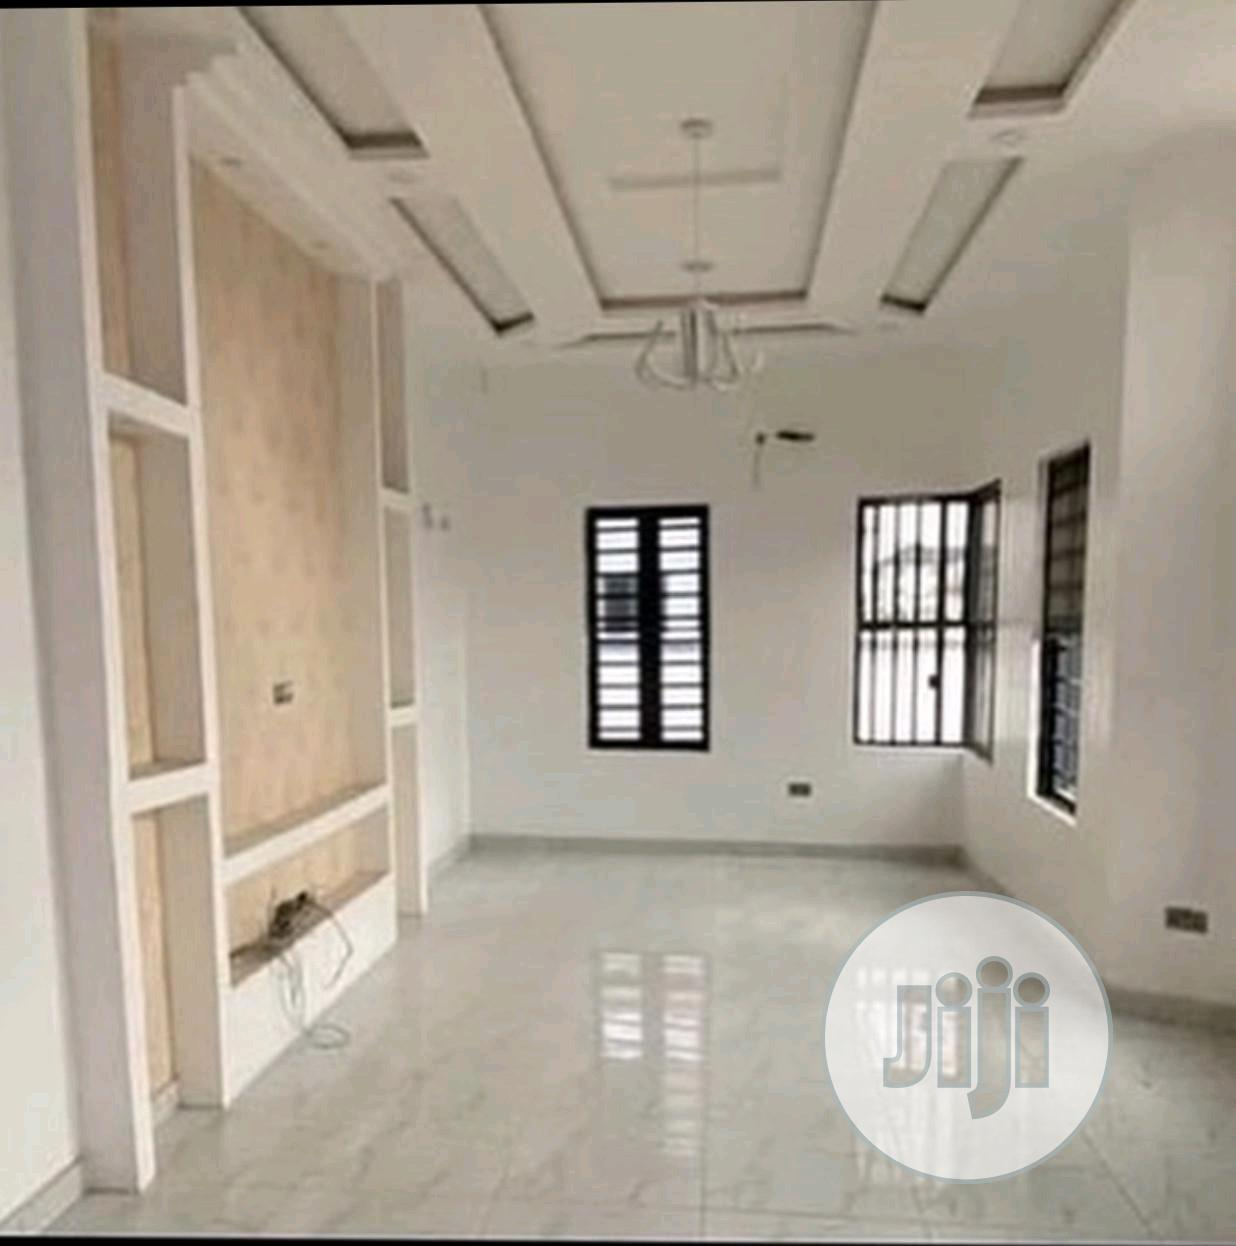 Newly Built Units Of 1BR Apartments (Miniflats) In Lekki | Houses & Apartments For Sale for sale in Lekki Phase 1, Lagos State, Nigeria